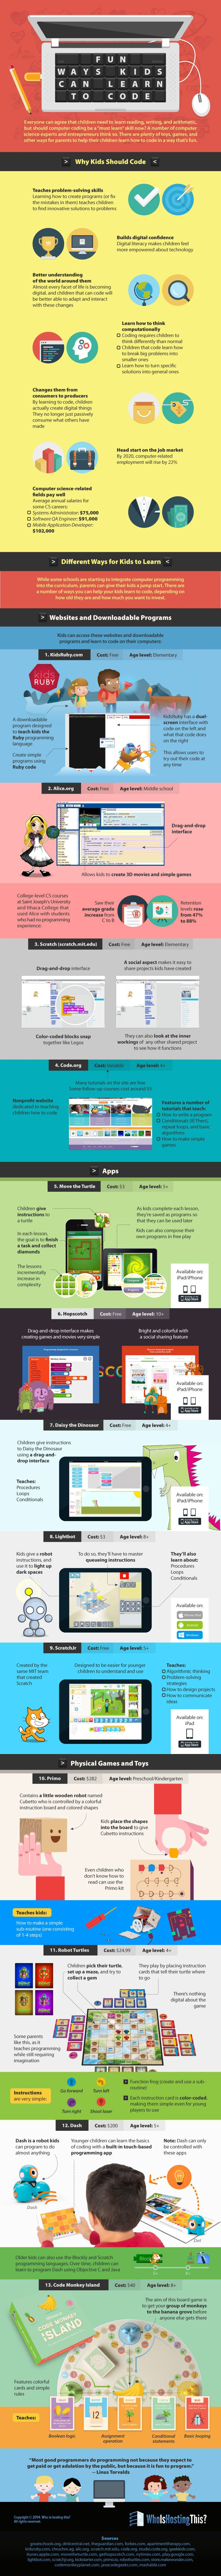 Fun Ways Kids Can Learn to Code #infographic